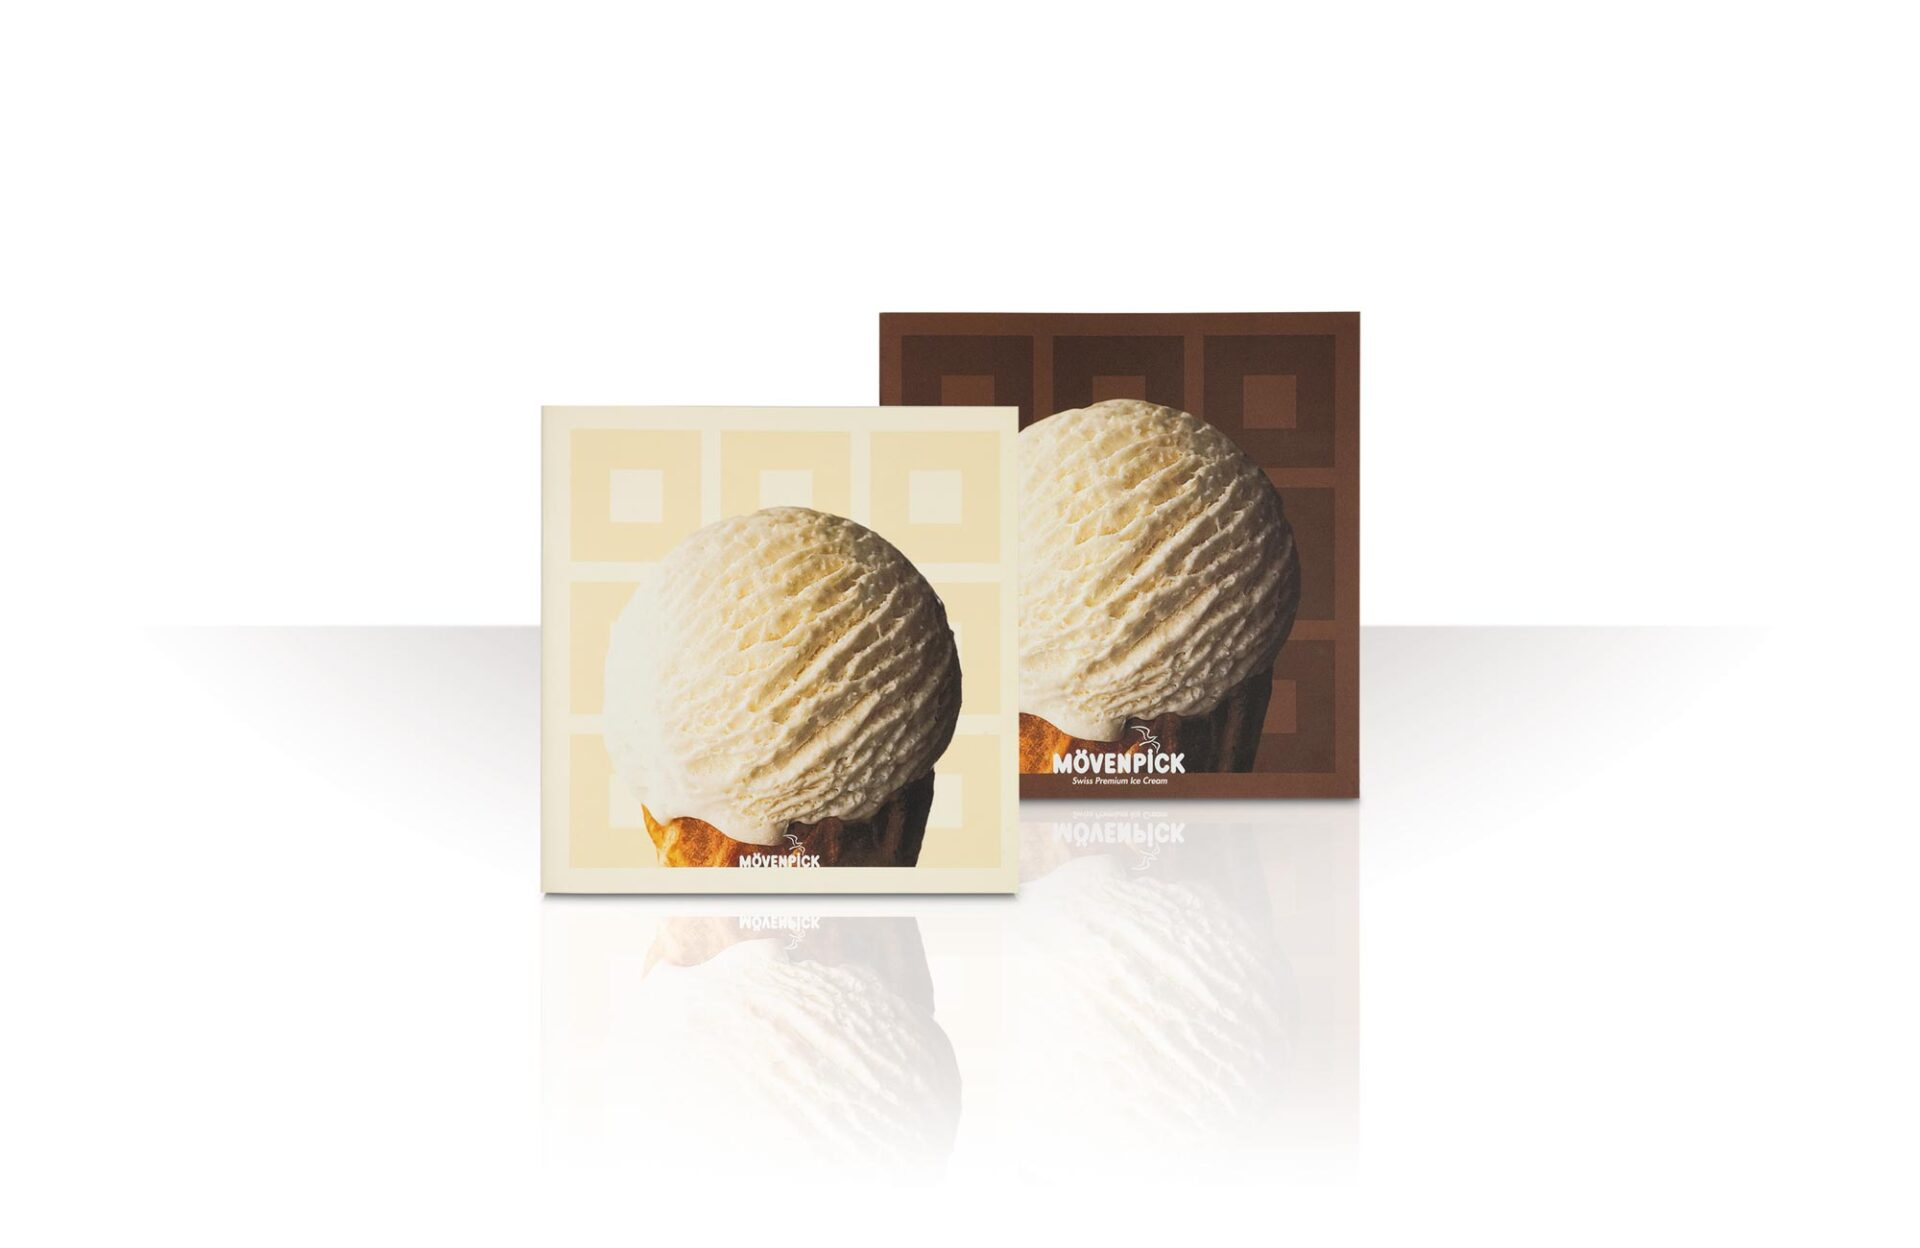 02_Movenpick_carte_glace_limited_S©LoupDesign_CH